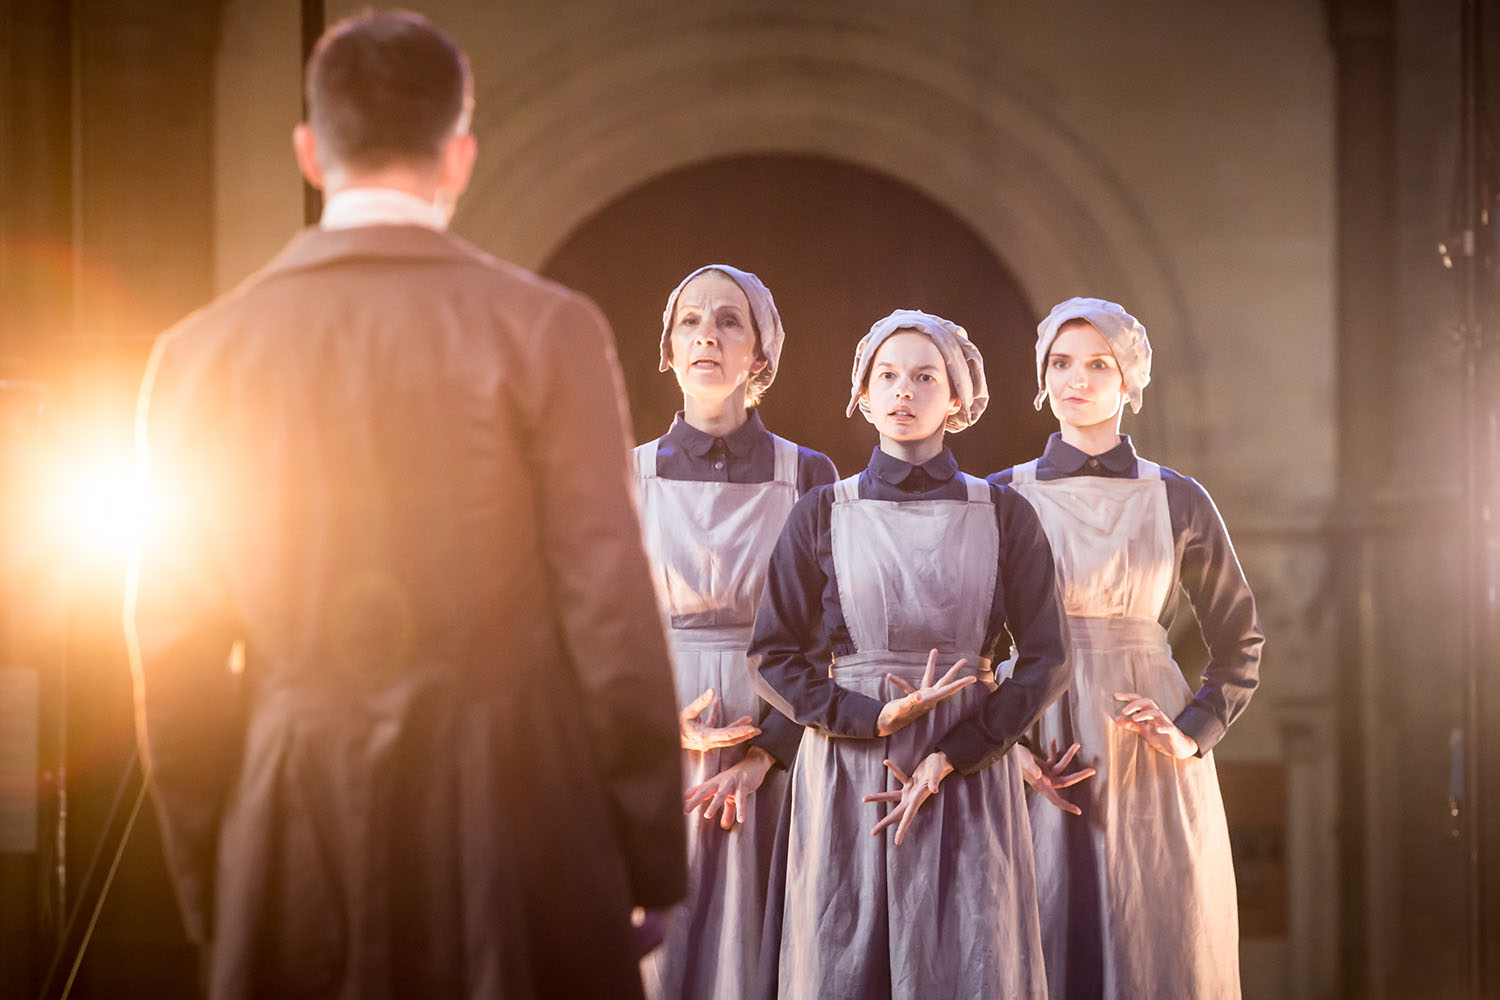 Louise Templeton, Robyn Holdaway and Bryony Tebbutt (Witches) in Antic Disposition's Macbeth (2019)